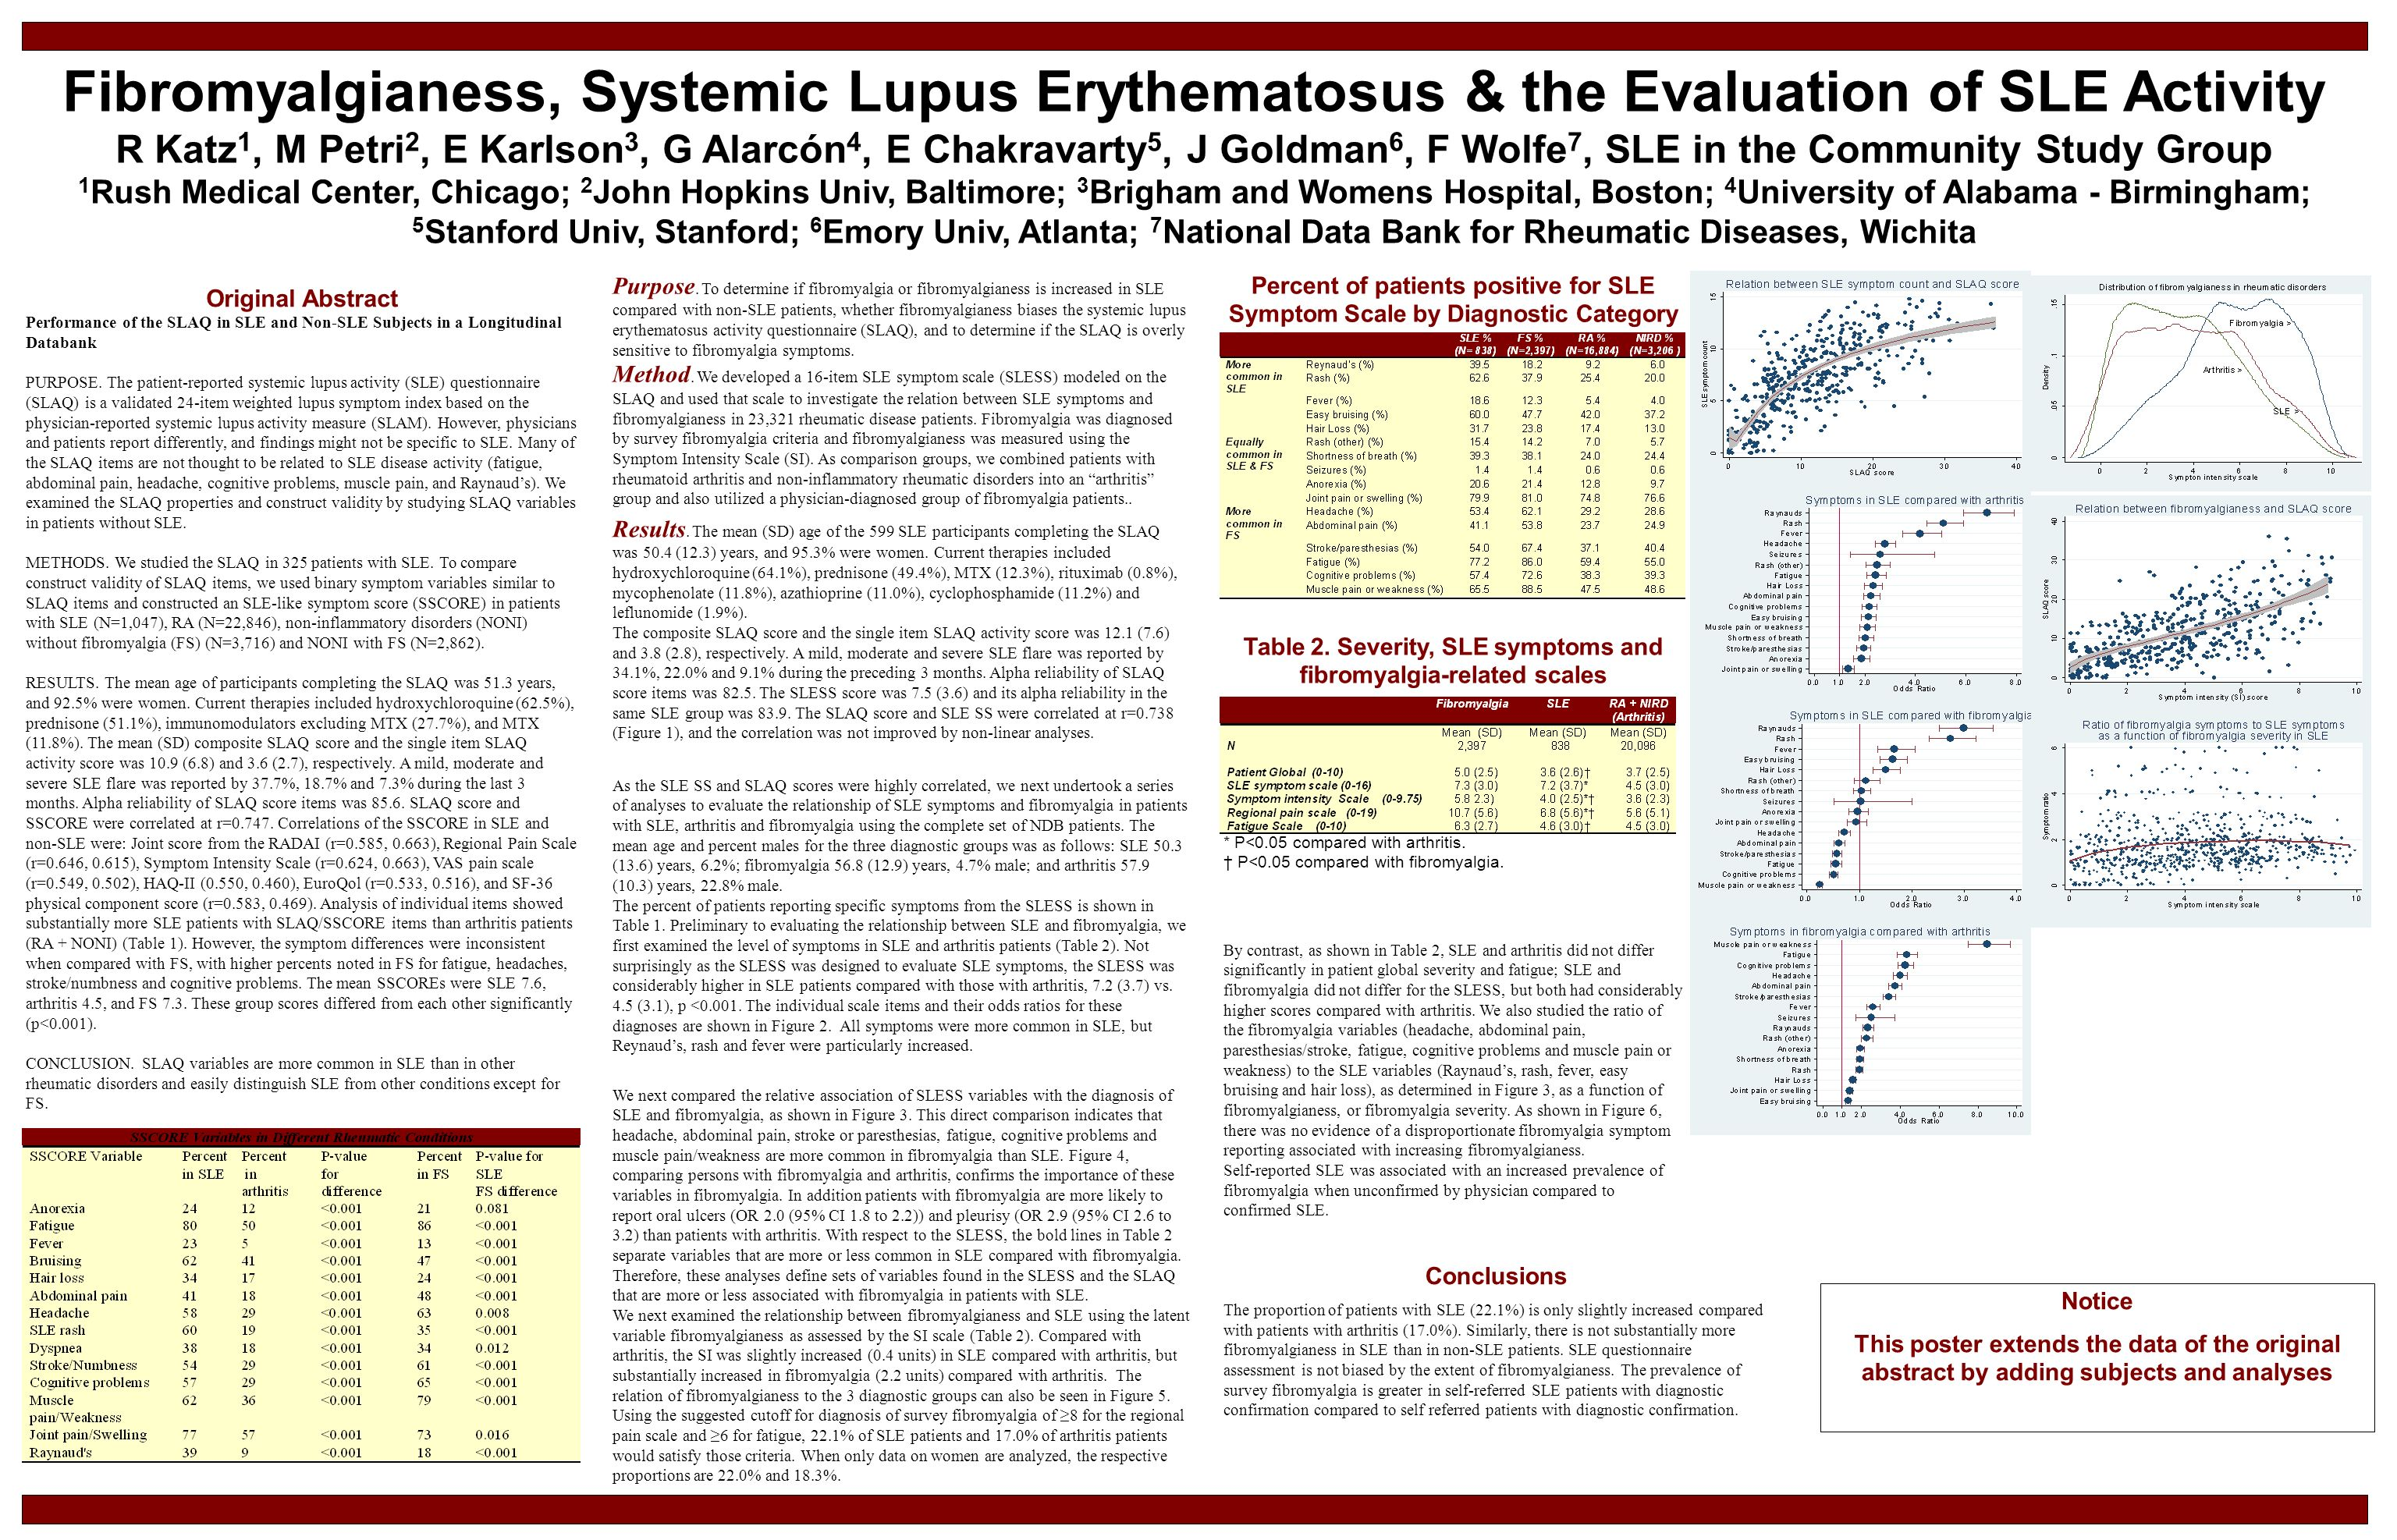 Fibromyalgianess, Systemic Lupus Erythematosus & the Evaluation of SLE Activity R Katz 1, M Petri 2, E Karlson 3, G Alarcón 4, E Chakravarty 5, J Goldman 6, F Wolfe 7, SLE in the Community Study Group 1 Rush Medical Center, Chicago; 2 John Hopkins Univ, Baltimore; 3 Brigham and Womens Hospital, Boston; 4 University of Alabama - Birmingham; 5 Stanford Univ, Stanford; 6 Emory Univ, Atlanta; 7 National Data Bank for Rheumatic Diseases, Wichita Original Abstract Performance of the SLAQ in SLE and Non-SLE Subjects in a Longitudinal Databank PURPOSE.